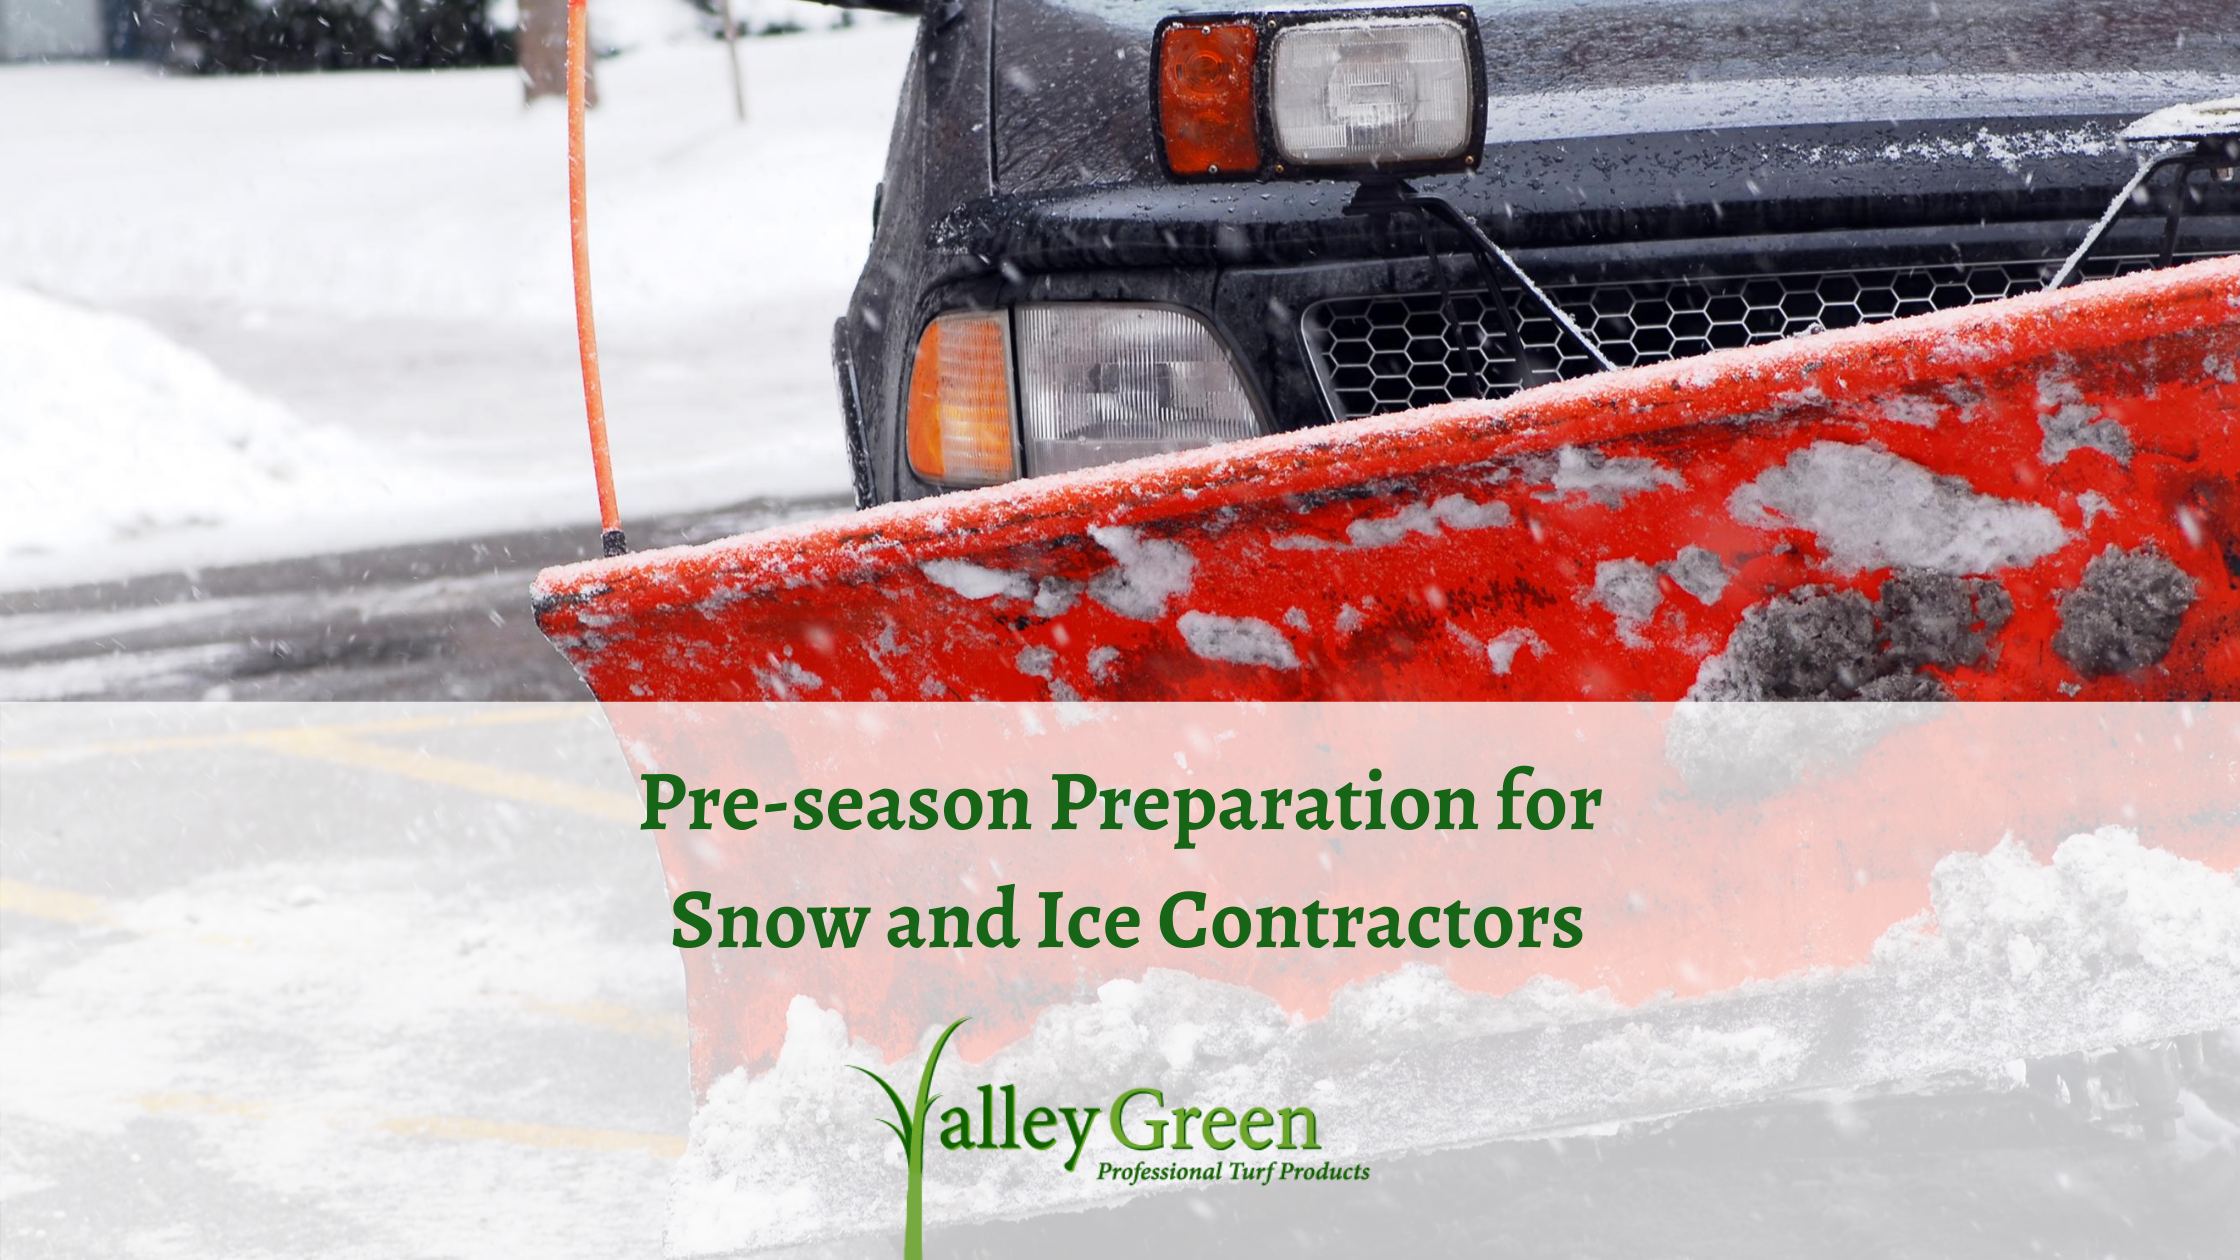 Pre-season Preparation for Snow and Ice Contractors